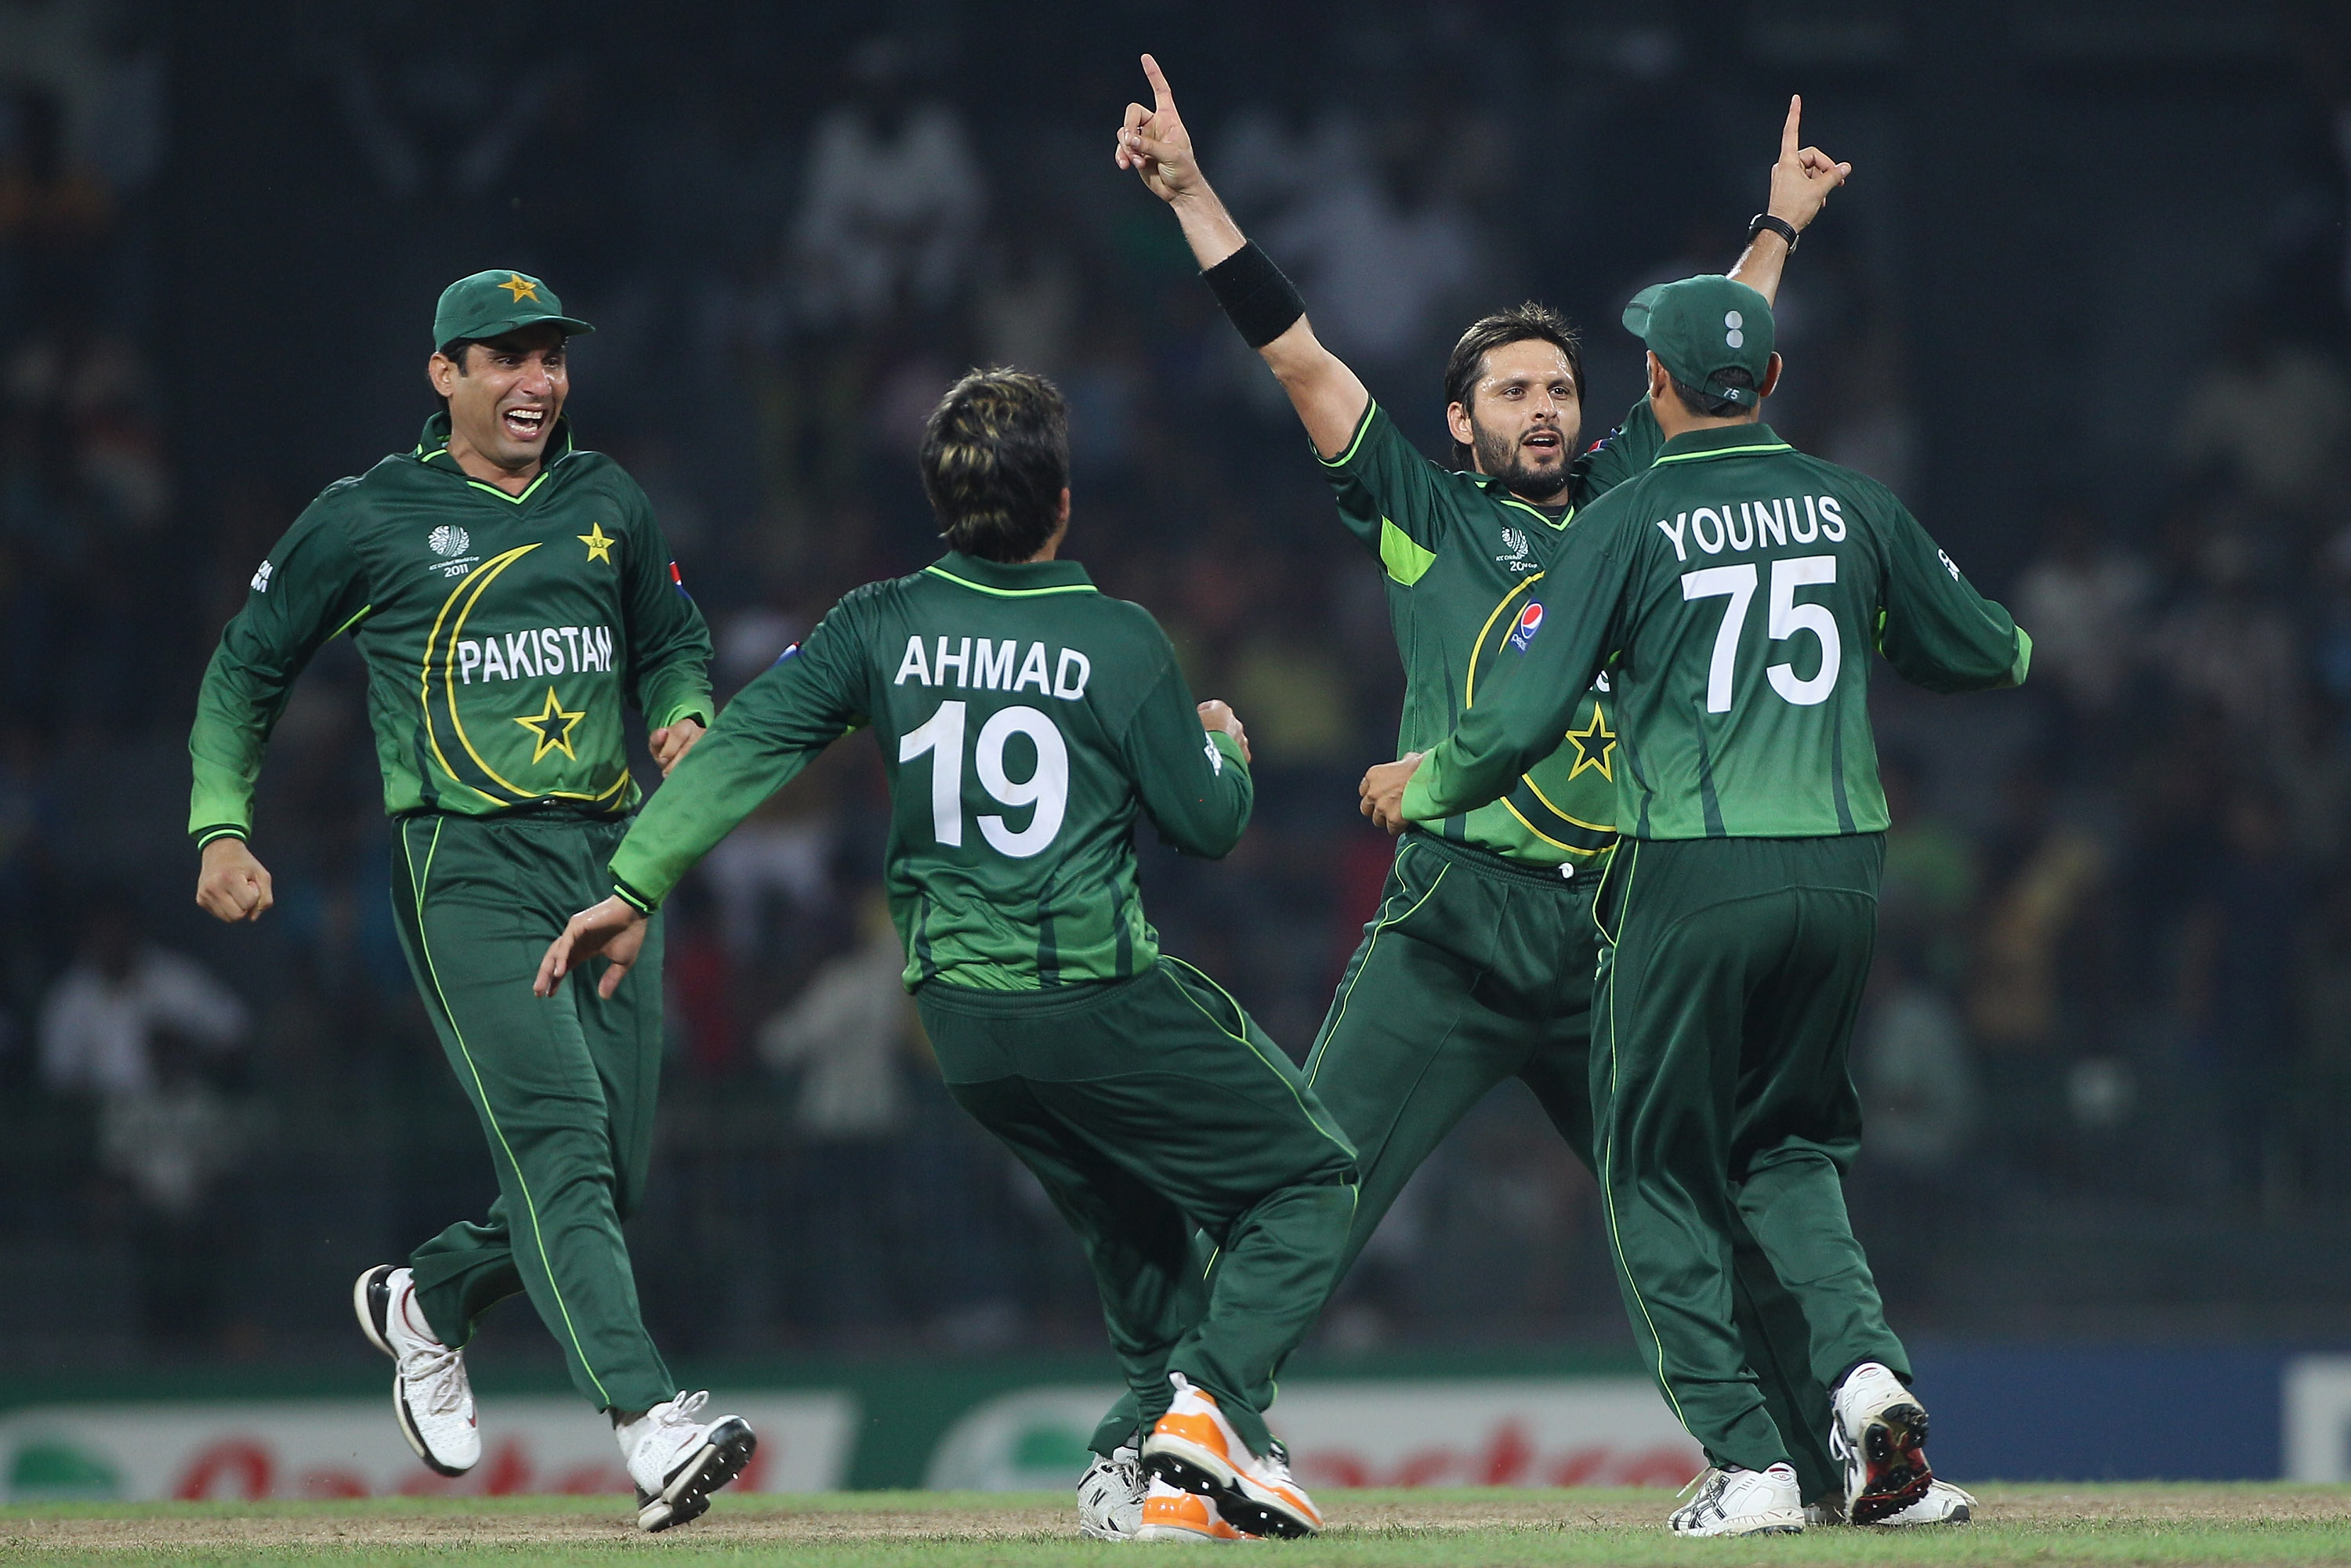 Cricket world cup t20 wallpapers - Pakistan cricket wallpapers hd ...